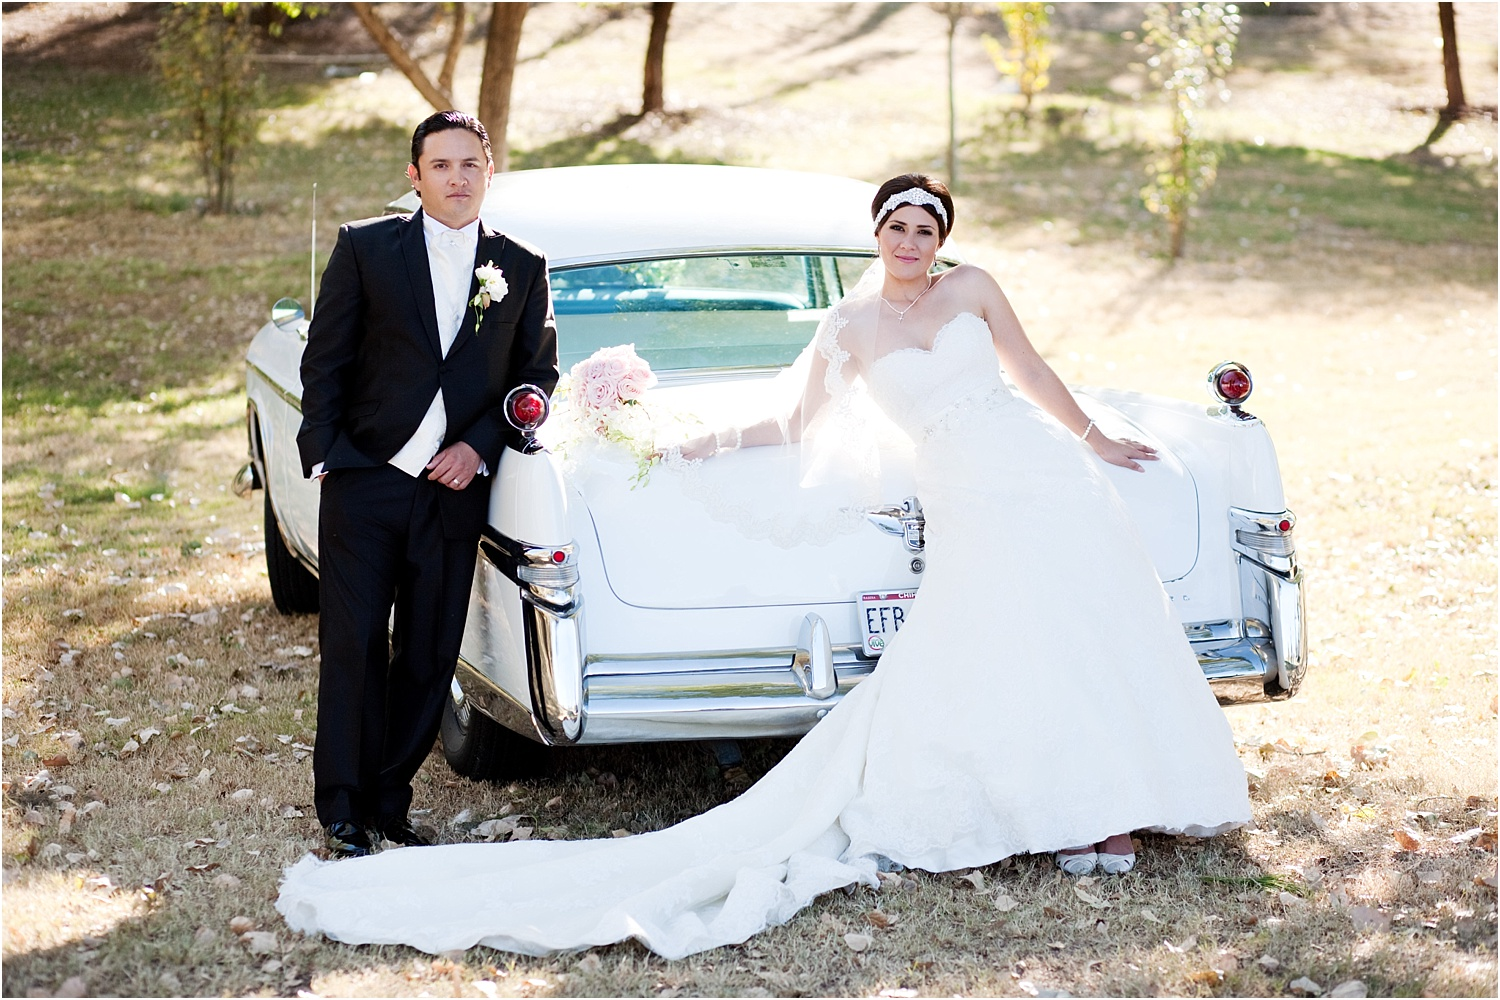 couple with car - How to do Portrait Photography in Bright Midday Sun